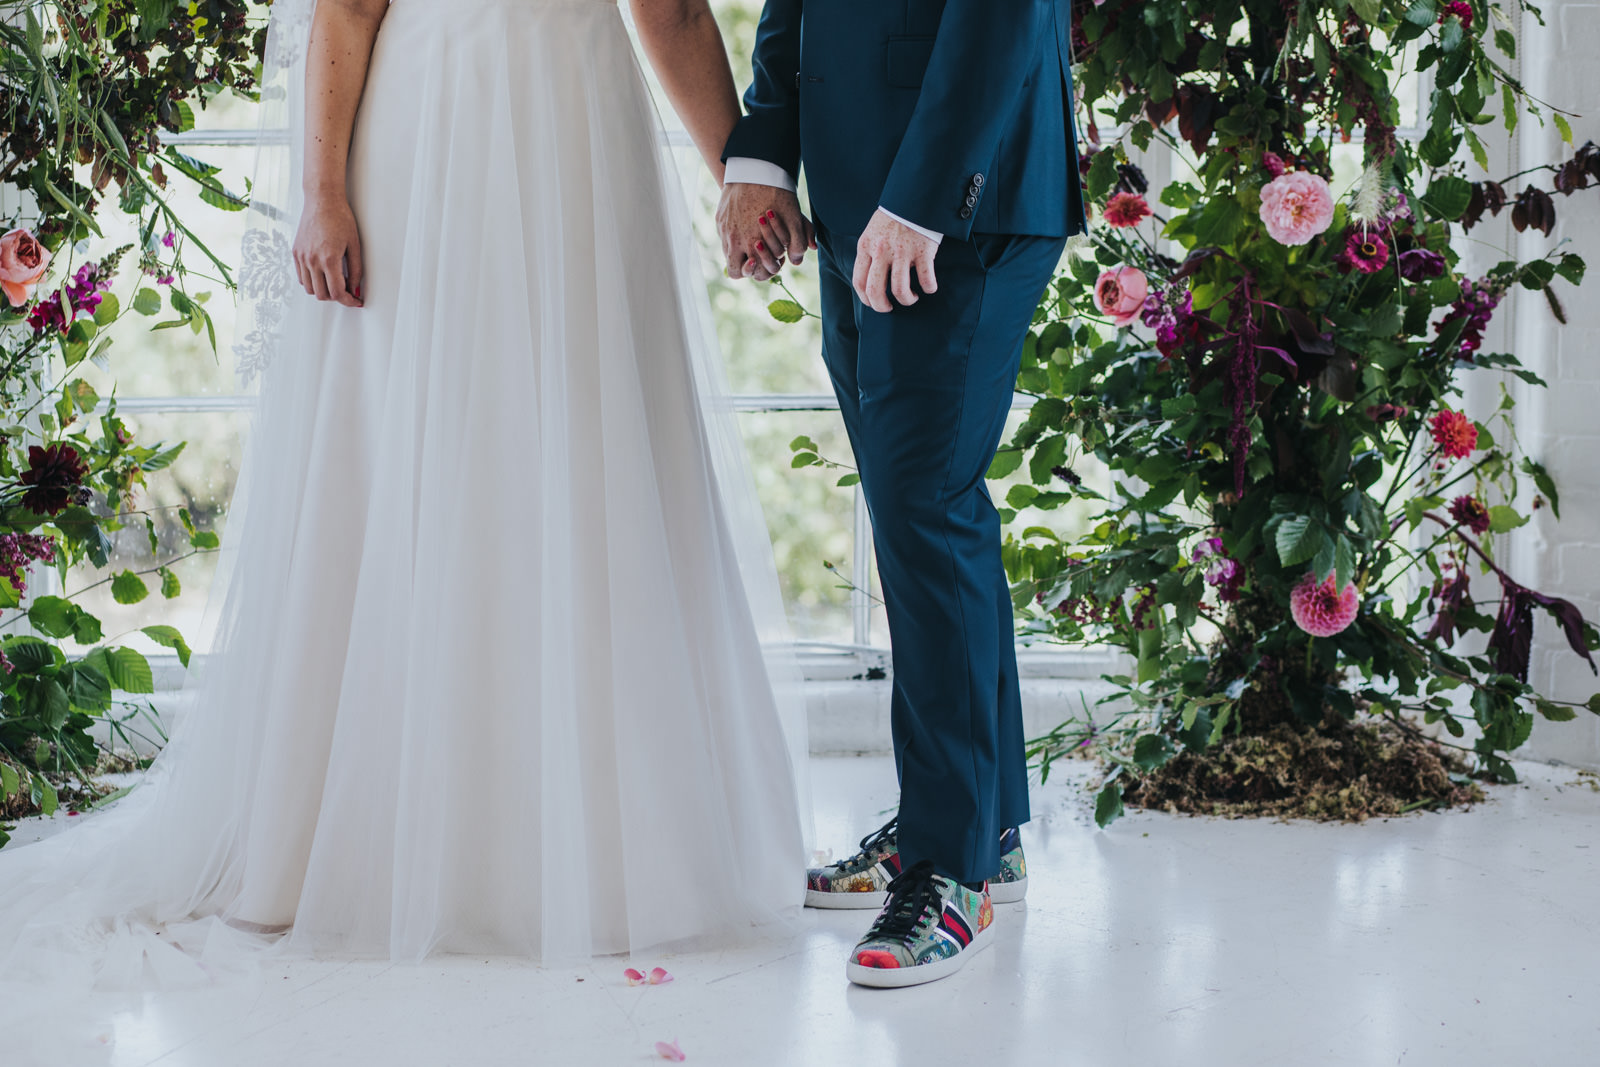 Bride and groom at the Shoreditch wedding ceremony at the Wimbourne House wedding